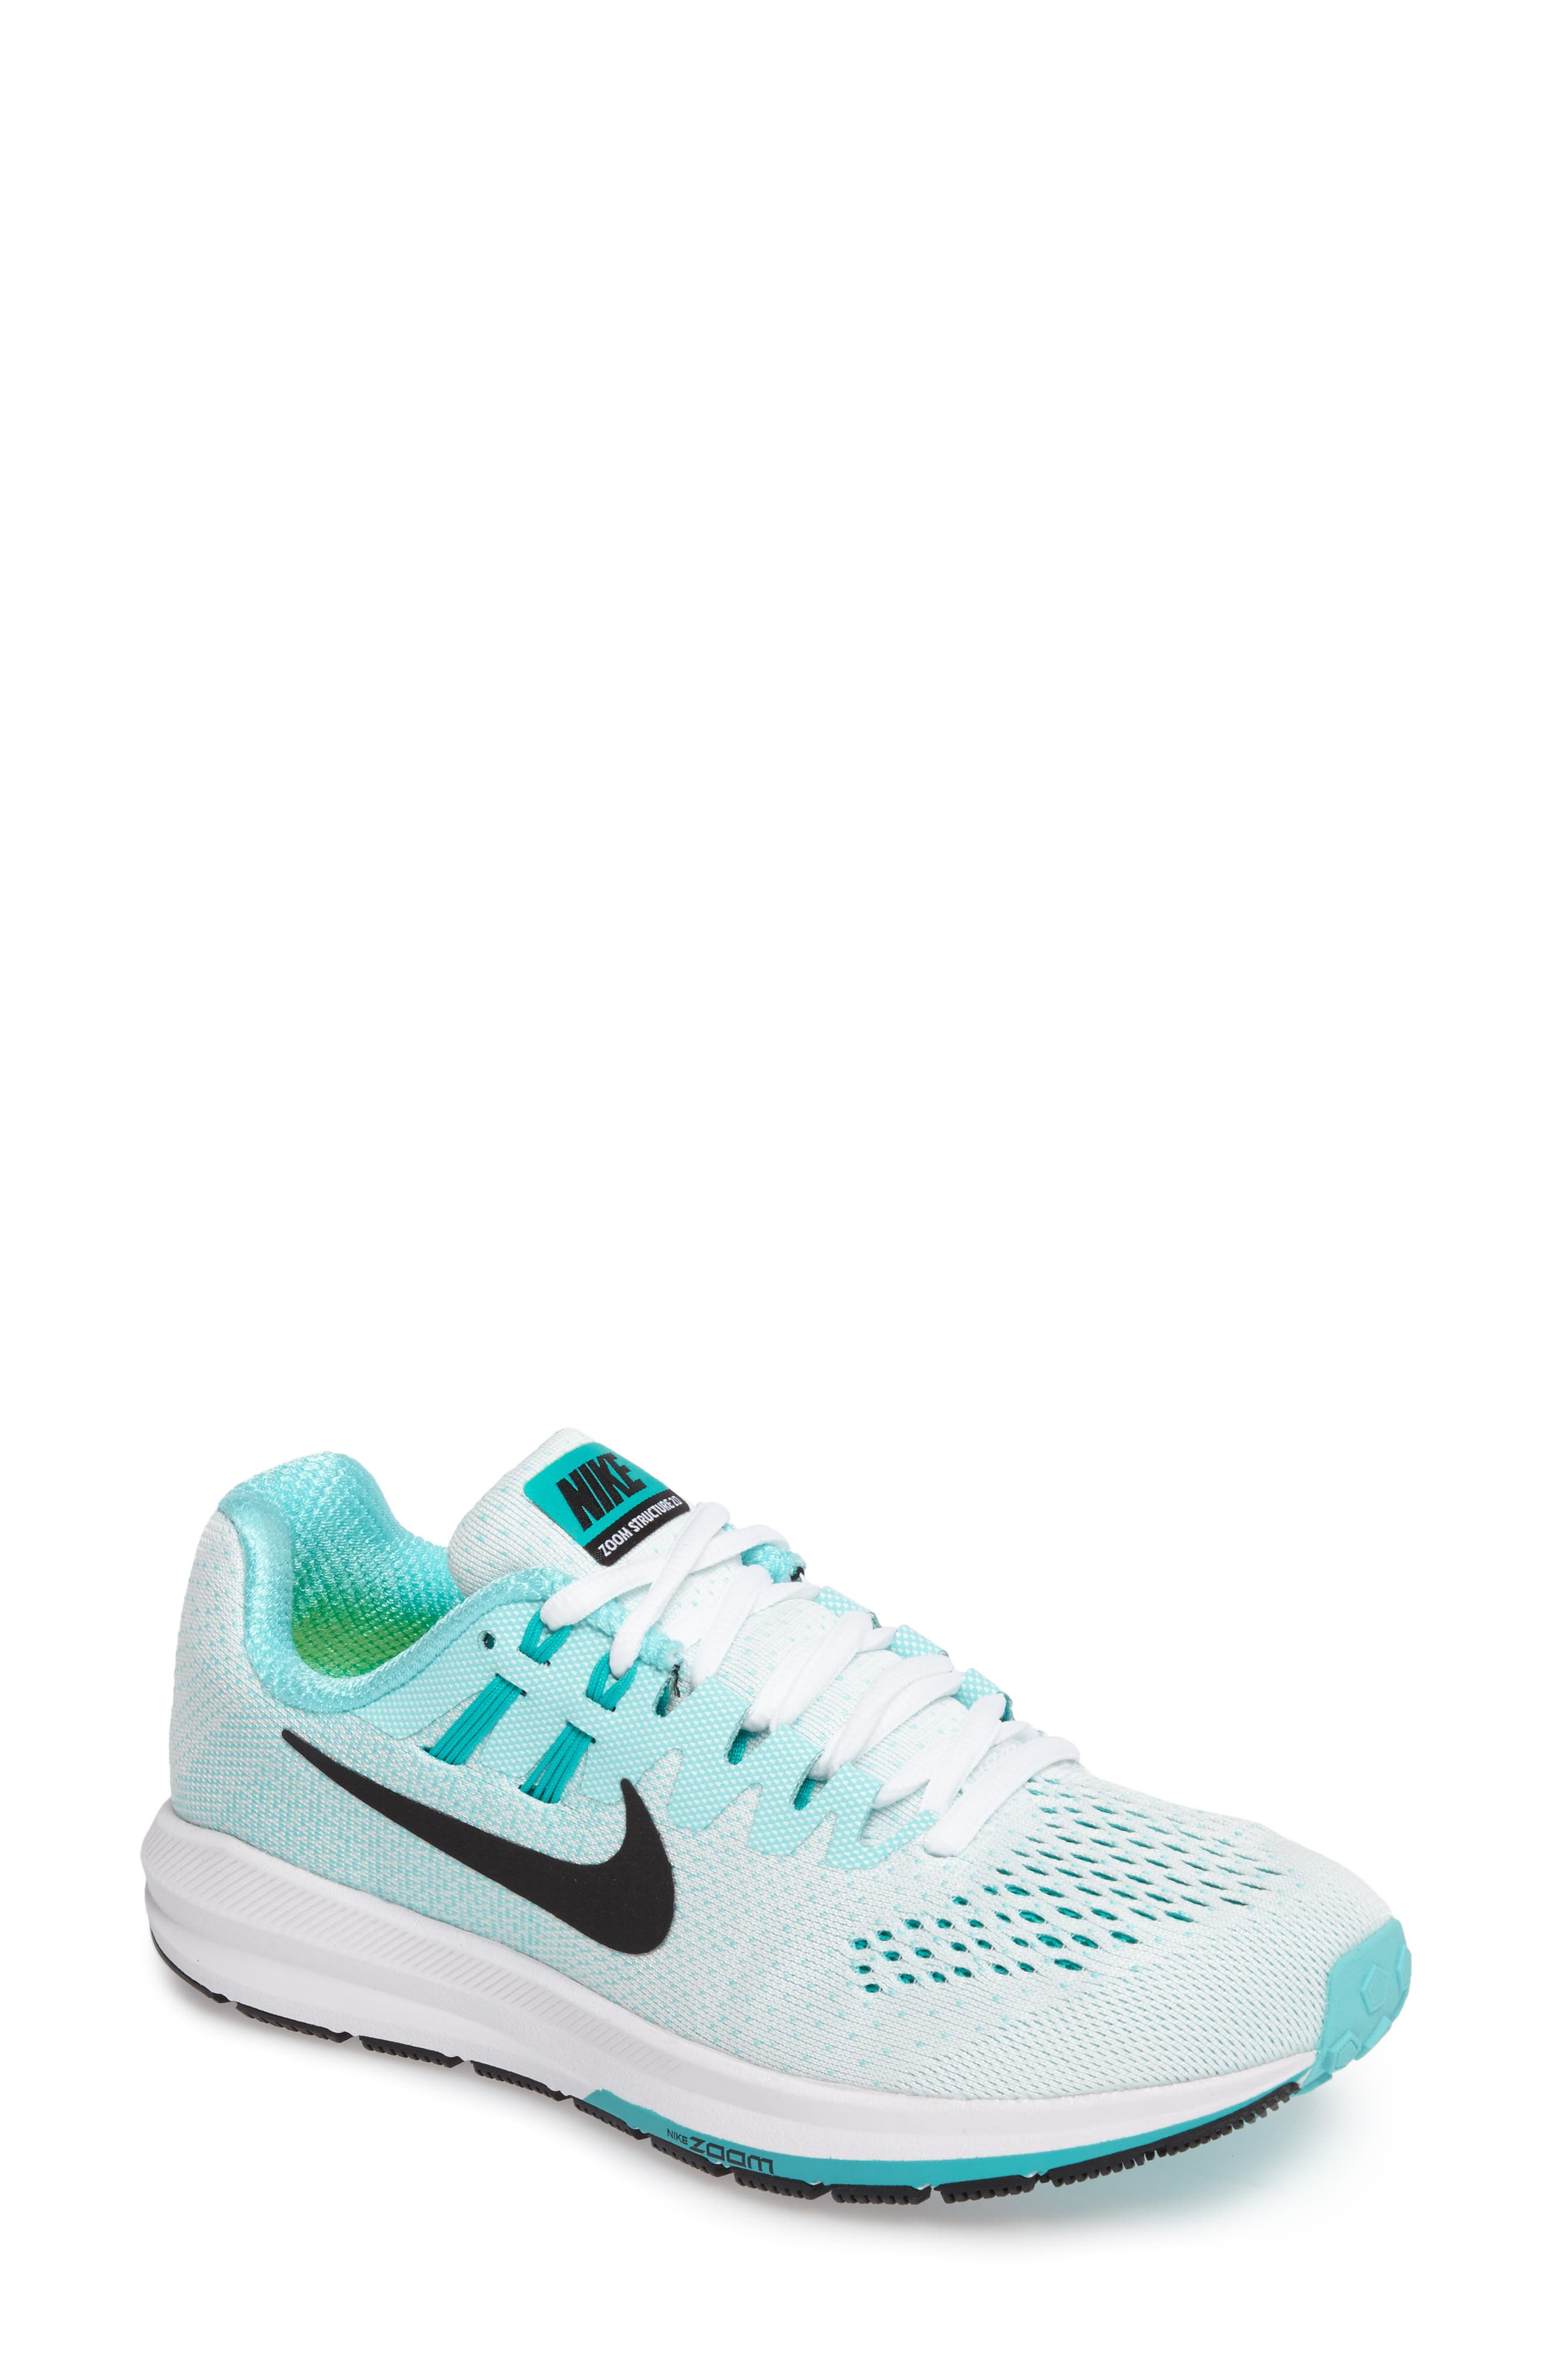 Alternate Image 1 Selected - Nike Air Zoom Structure 20 Running Shoe (Women)